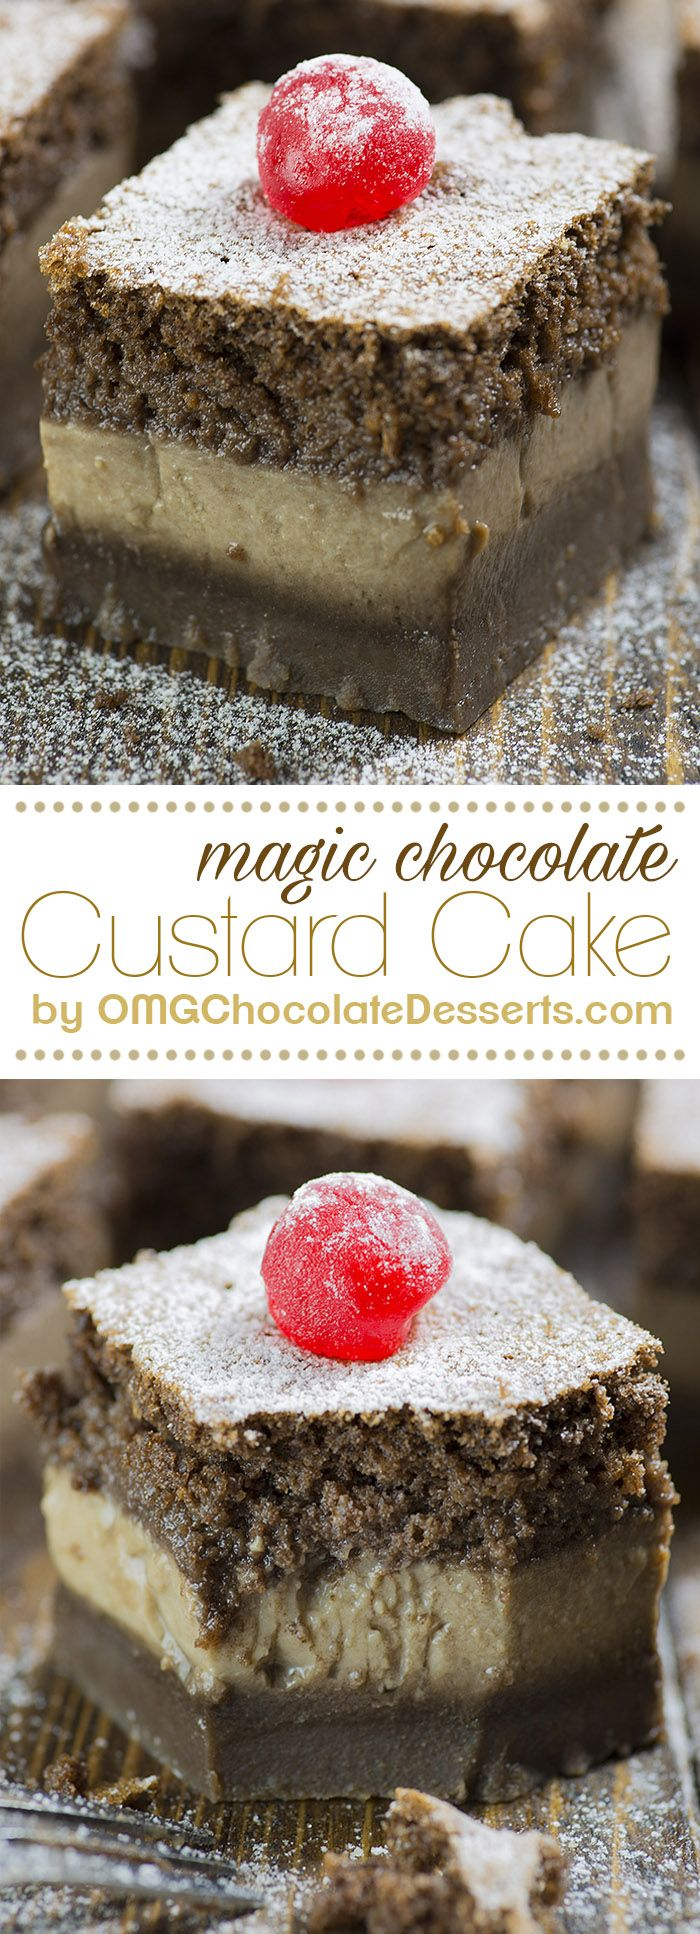 Hocus – Pocus! From one cakes mix poured into your baking pan, in a very short time, you will have three fantastic chocolate layers! Chocolate Magic Custard Cake is the perfect dessert for a true chocoholic!